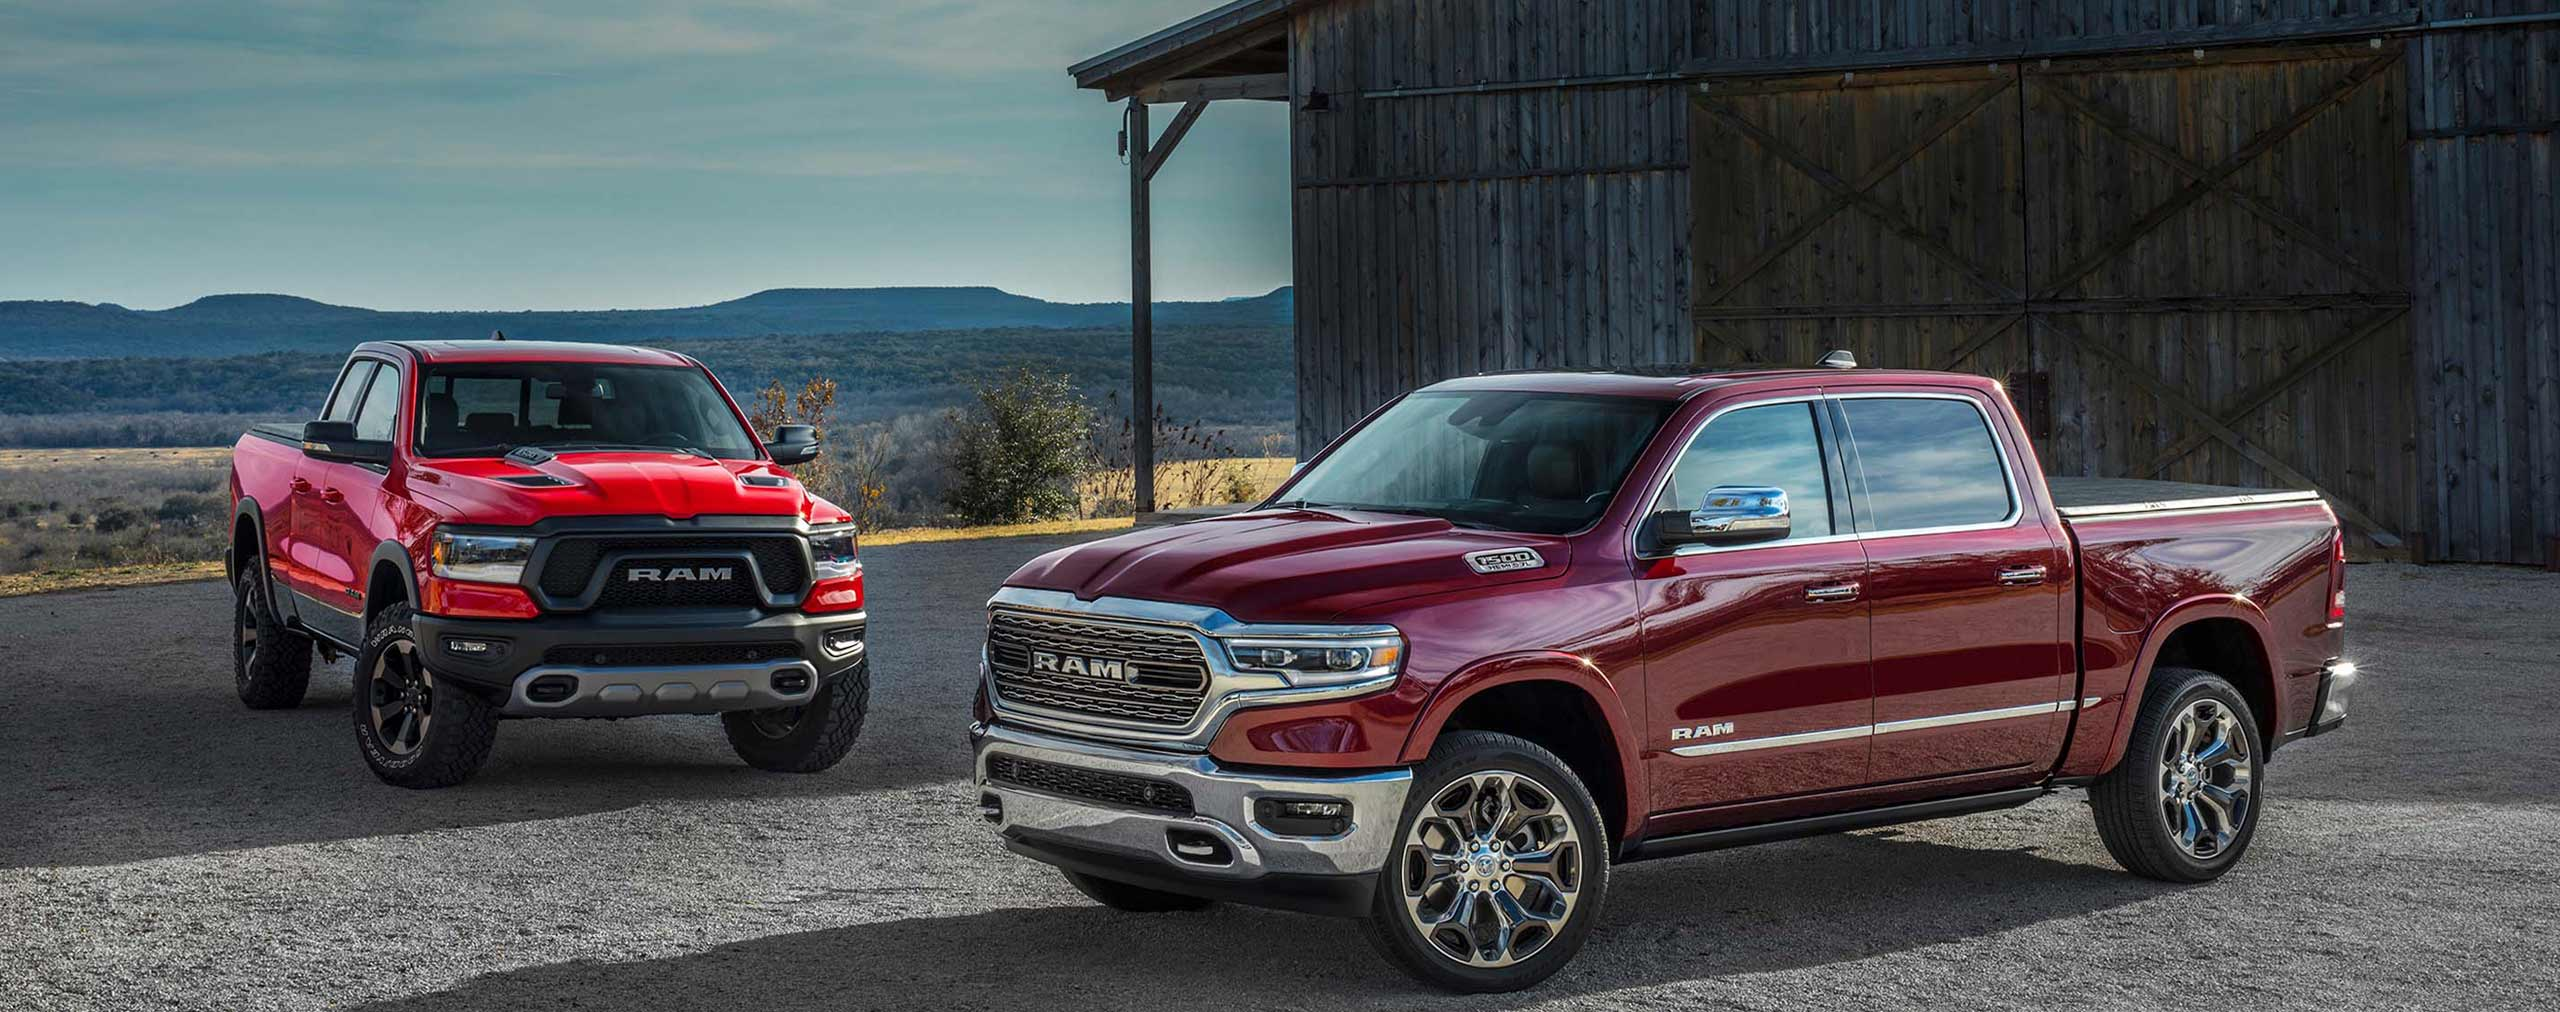 North Carolina Review - 2019 RAM 1500